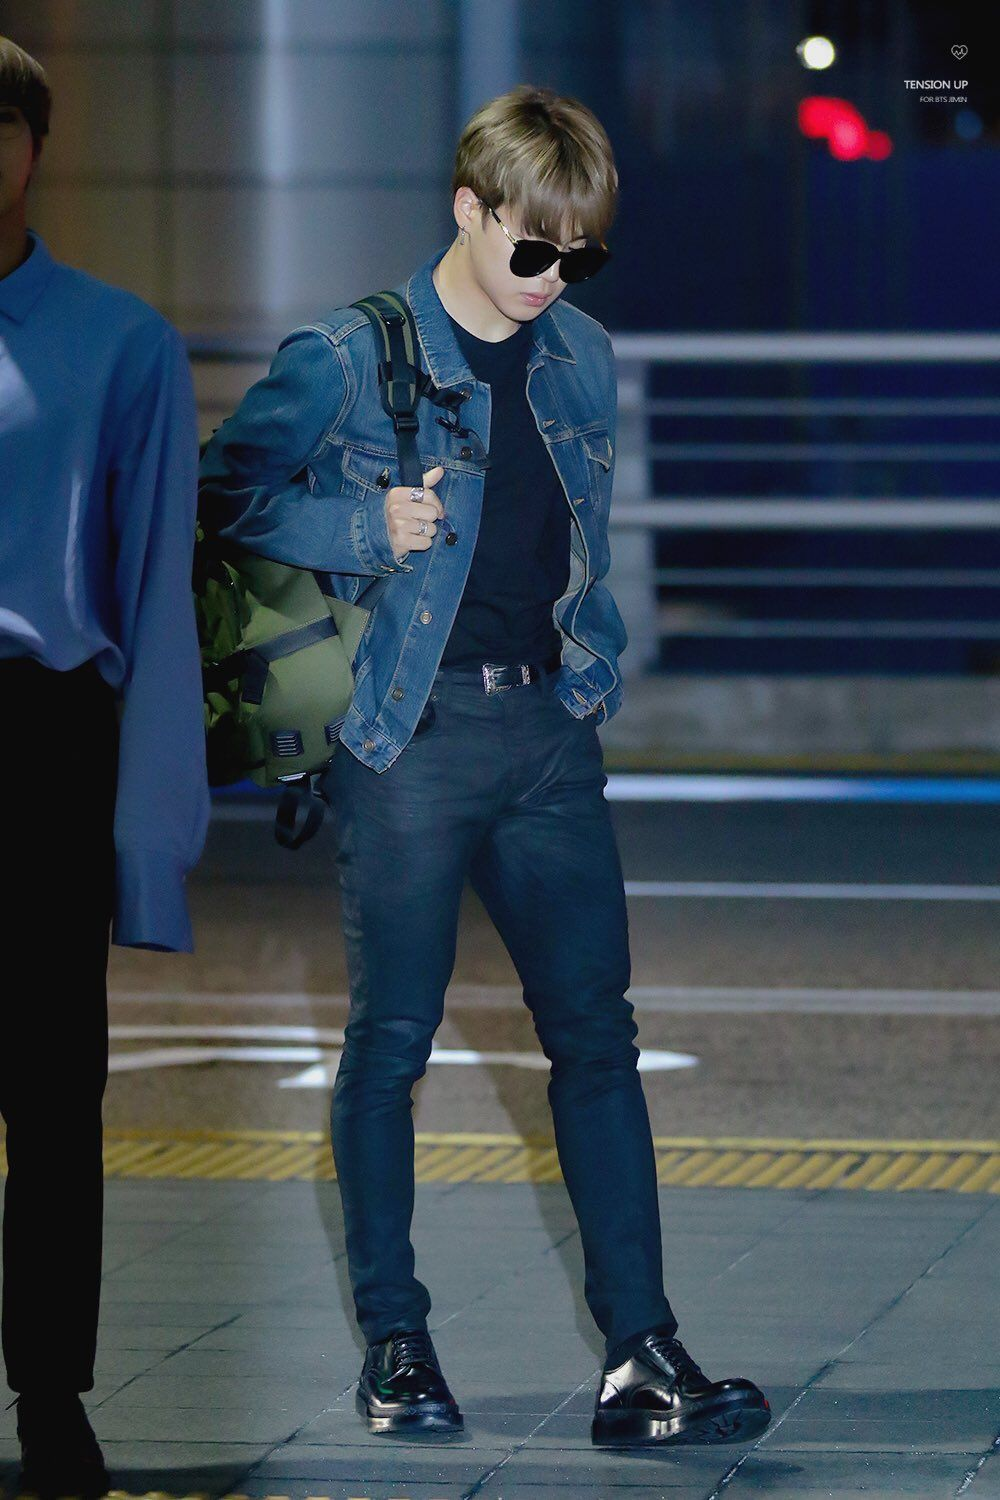 22 Pictures Of Bts Jimin In Jeans You Didn T Know You